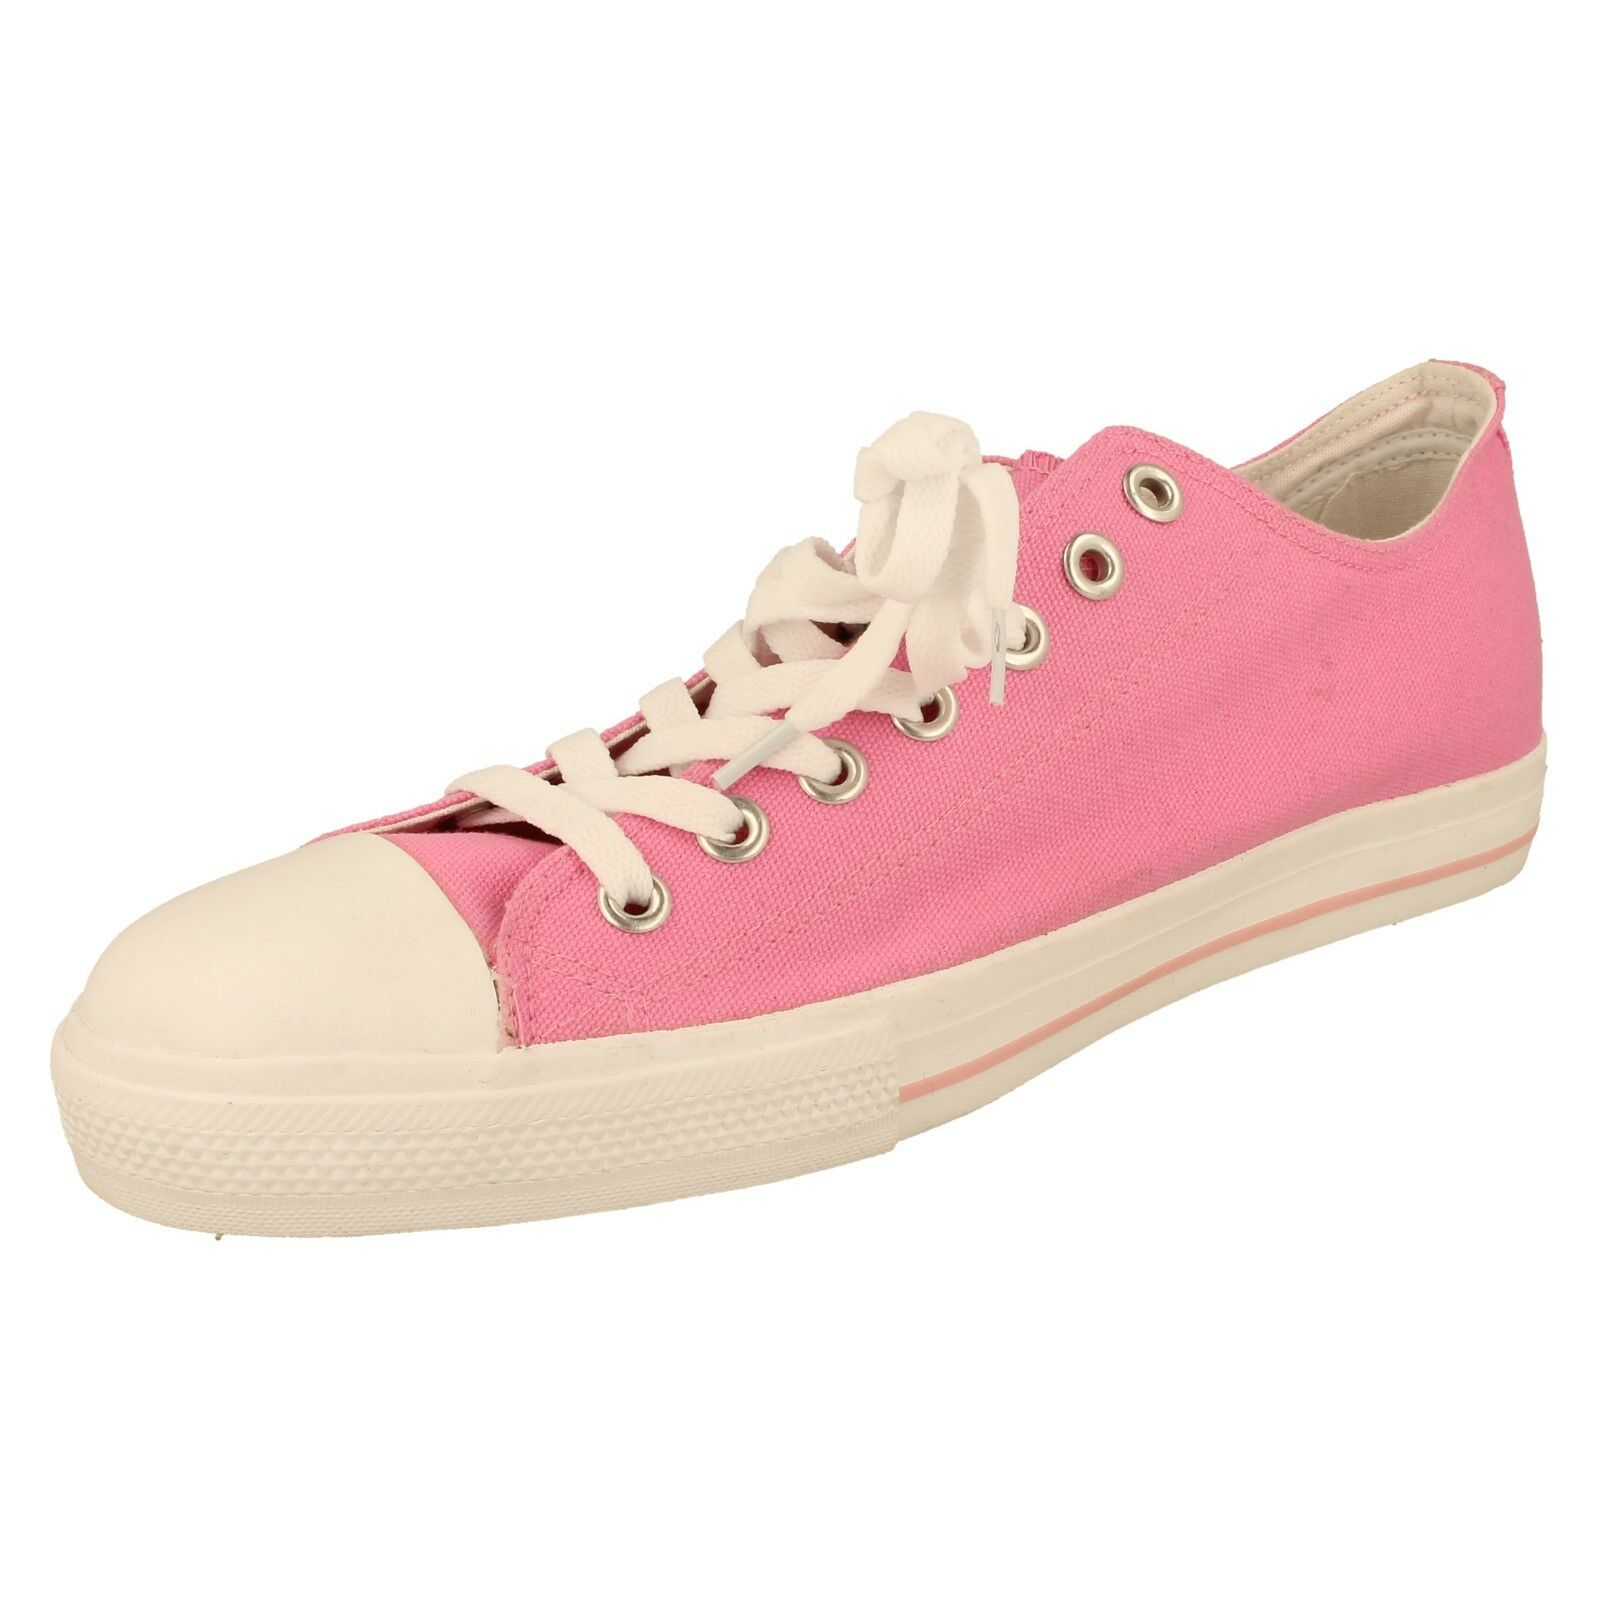 unisex Fila Scarpe sportive - CULTO The latest discount shoes for men and women